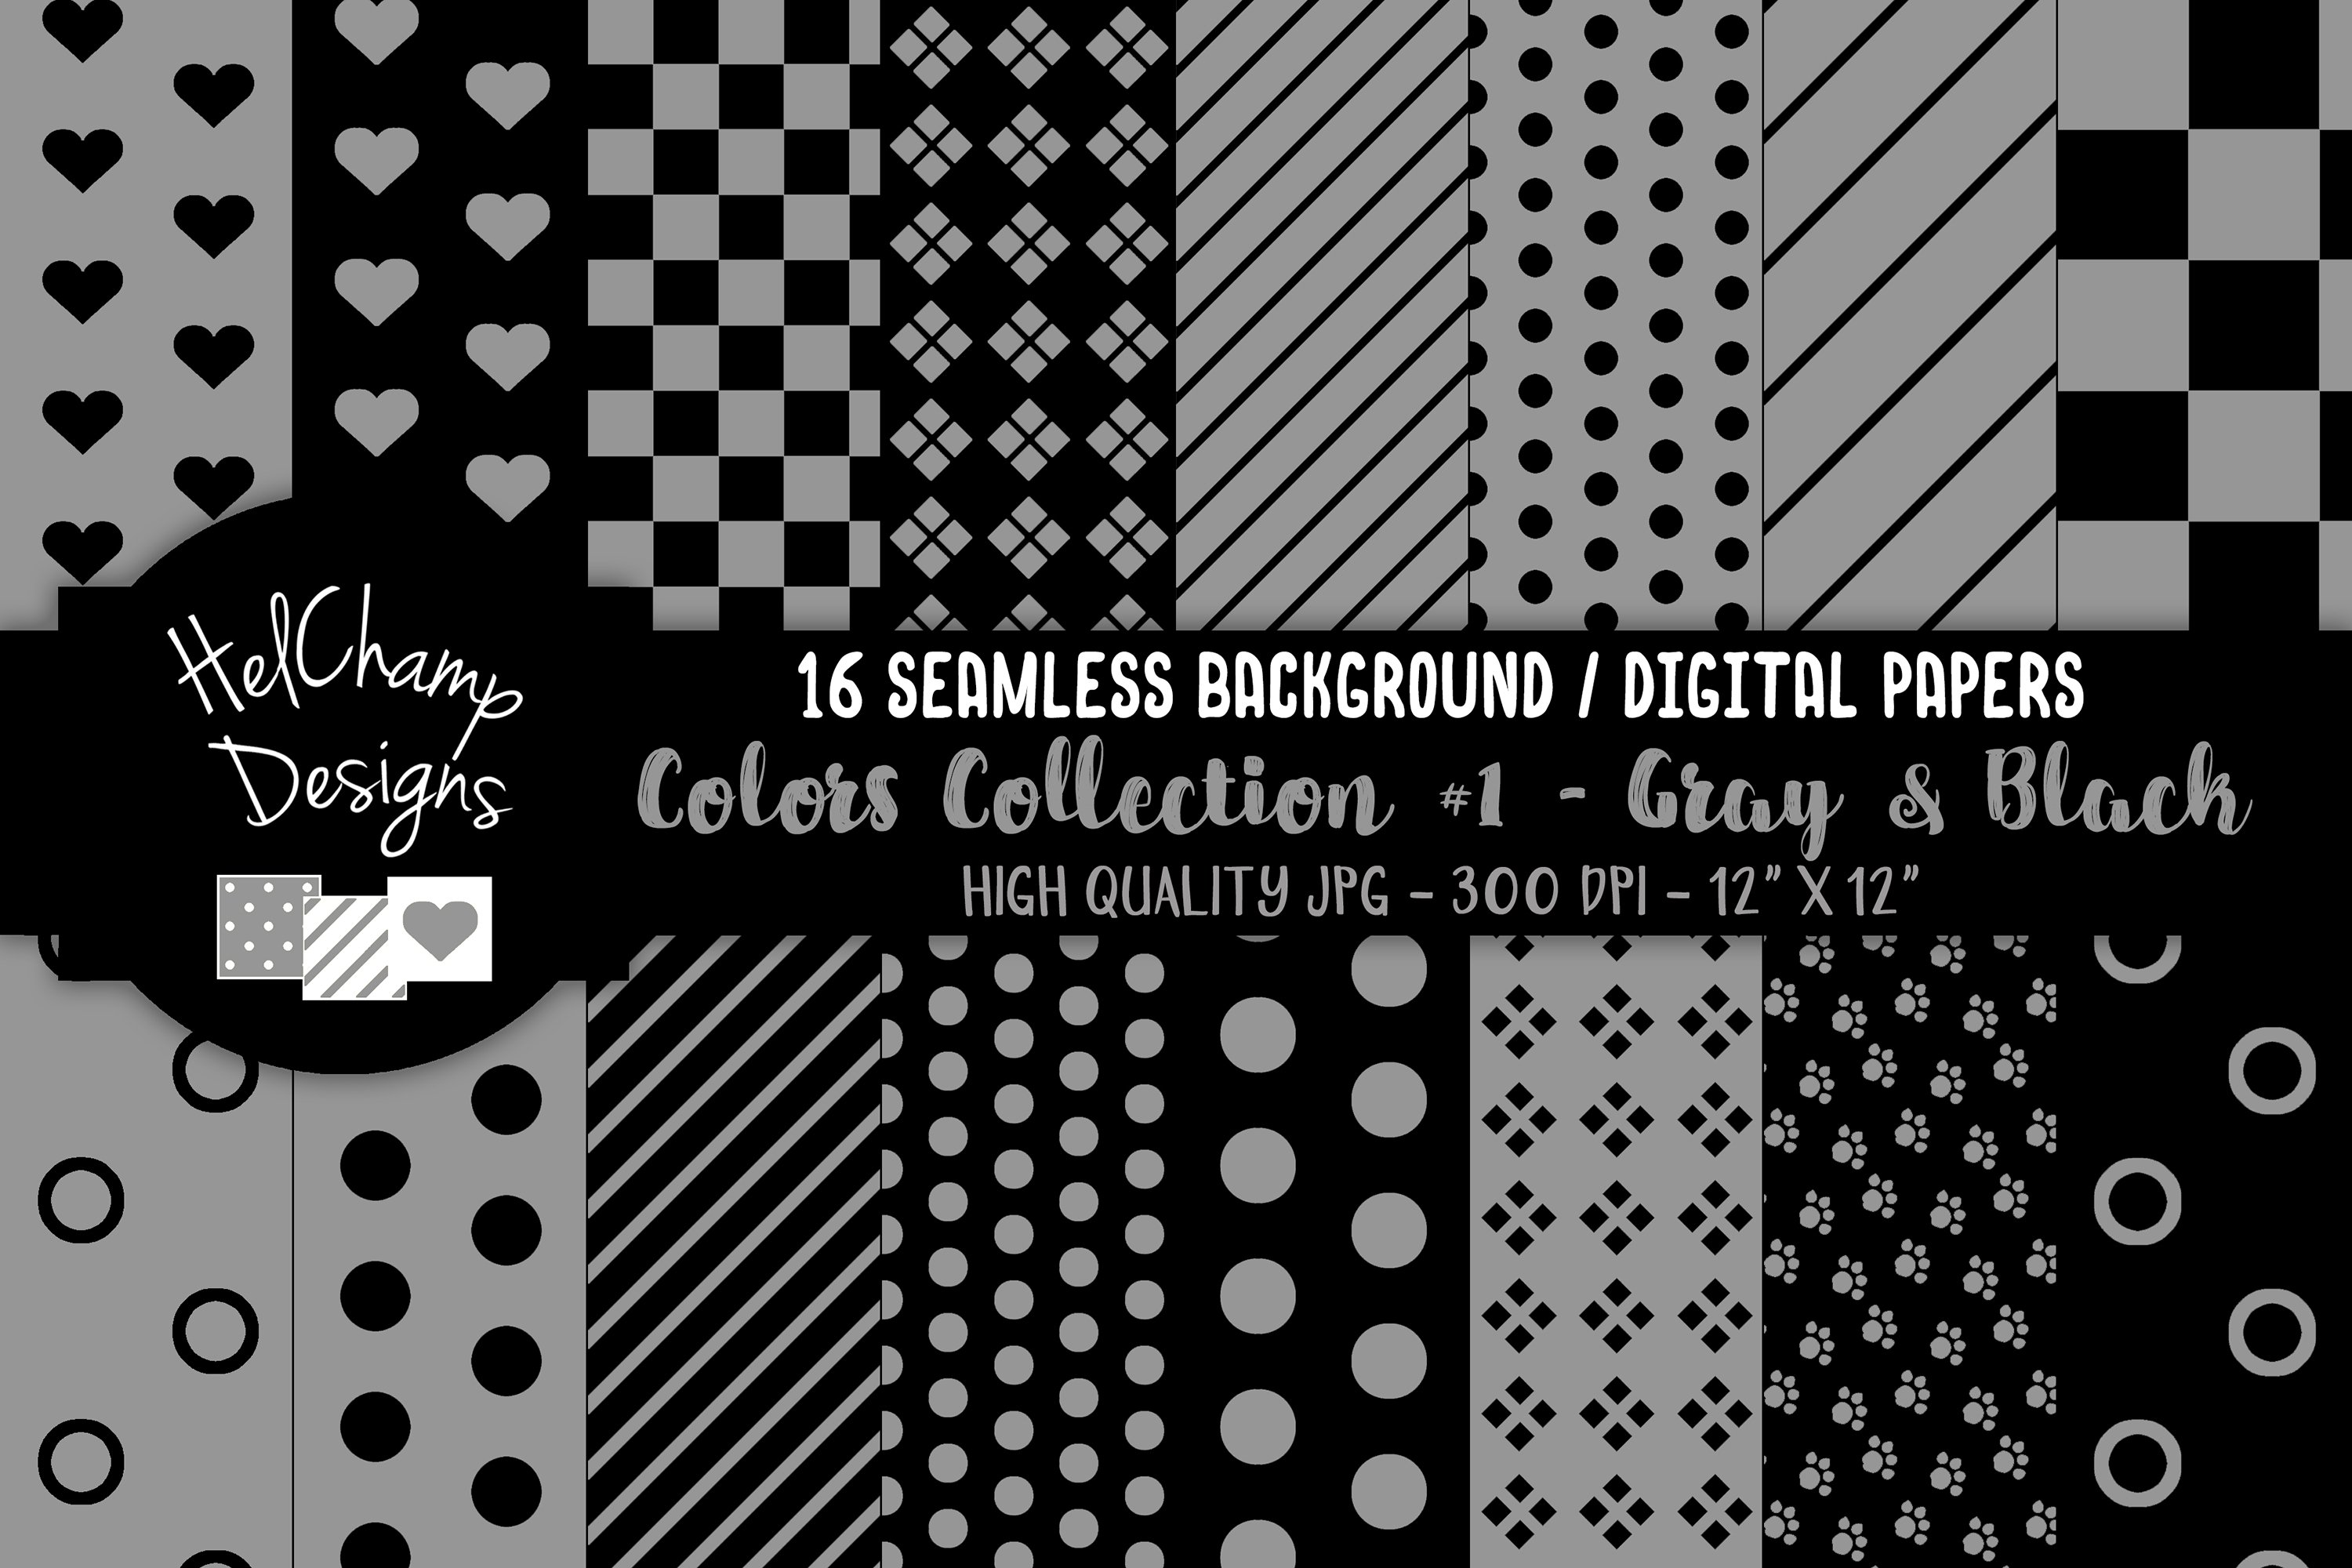 16 seamless Digital Papers - Gray and Black - HC107 example image 1